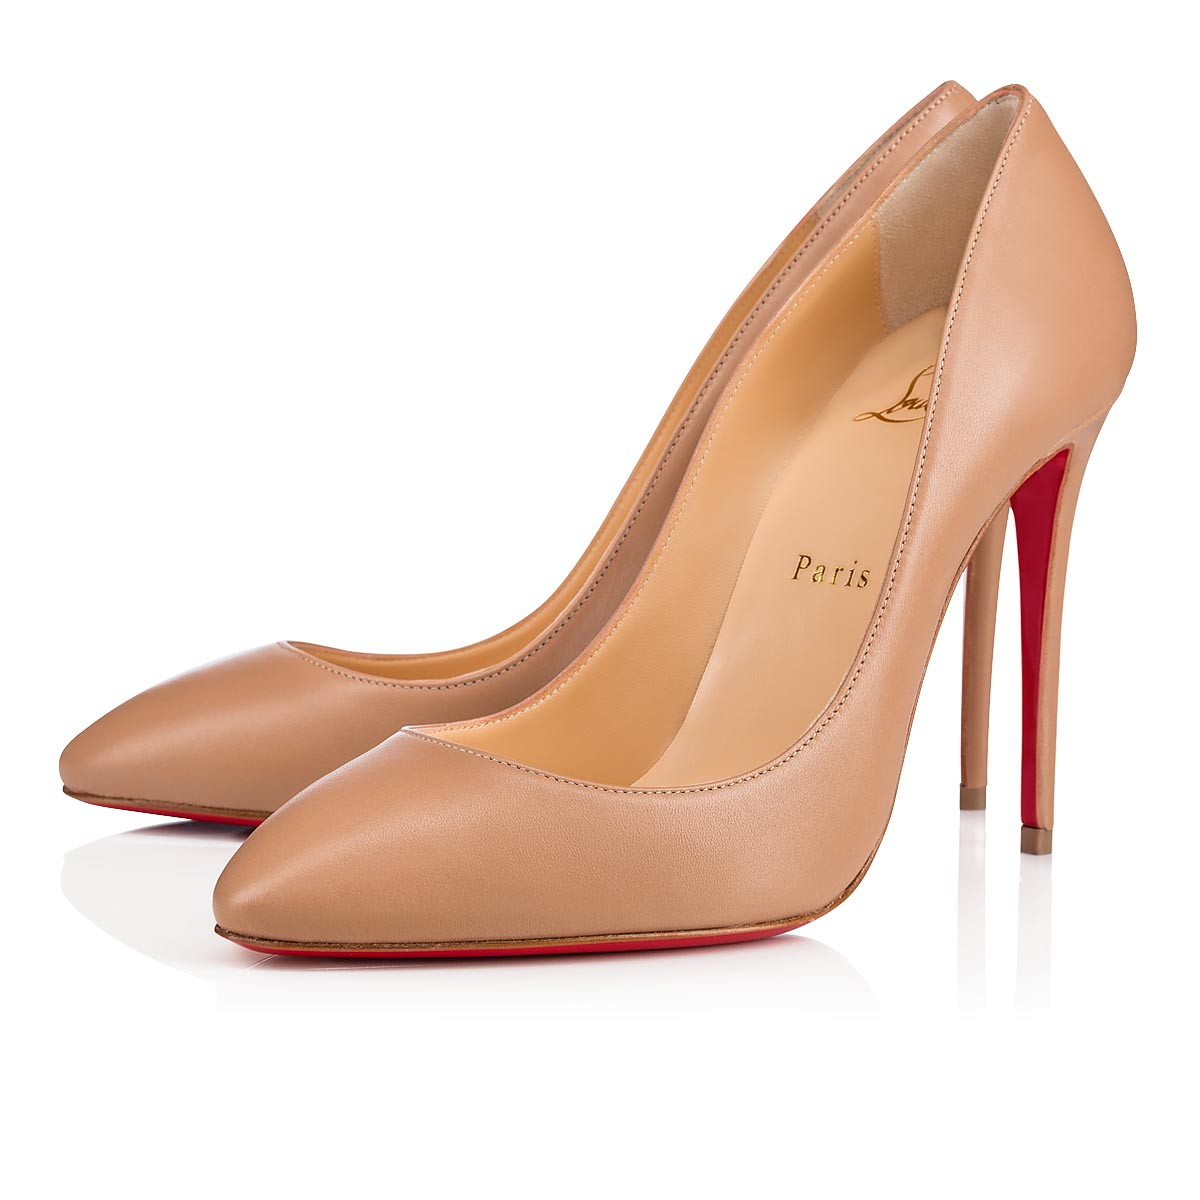 c624421b1b0 Eloise 100 Nude Leather - Women Shoes - Christian Louboutin